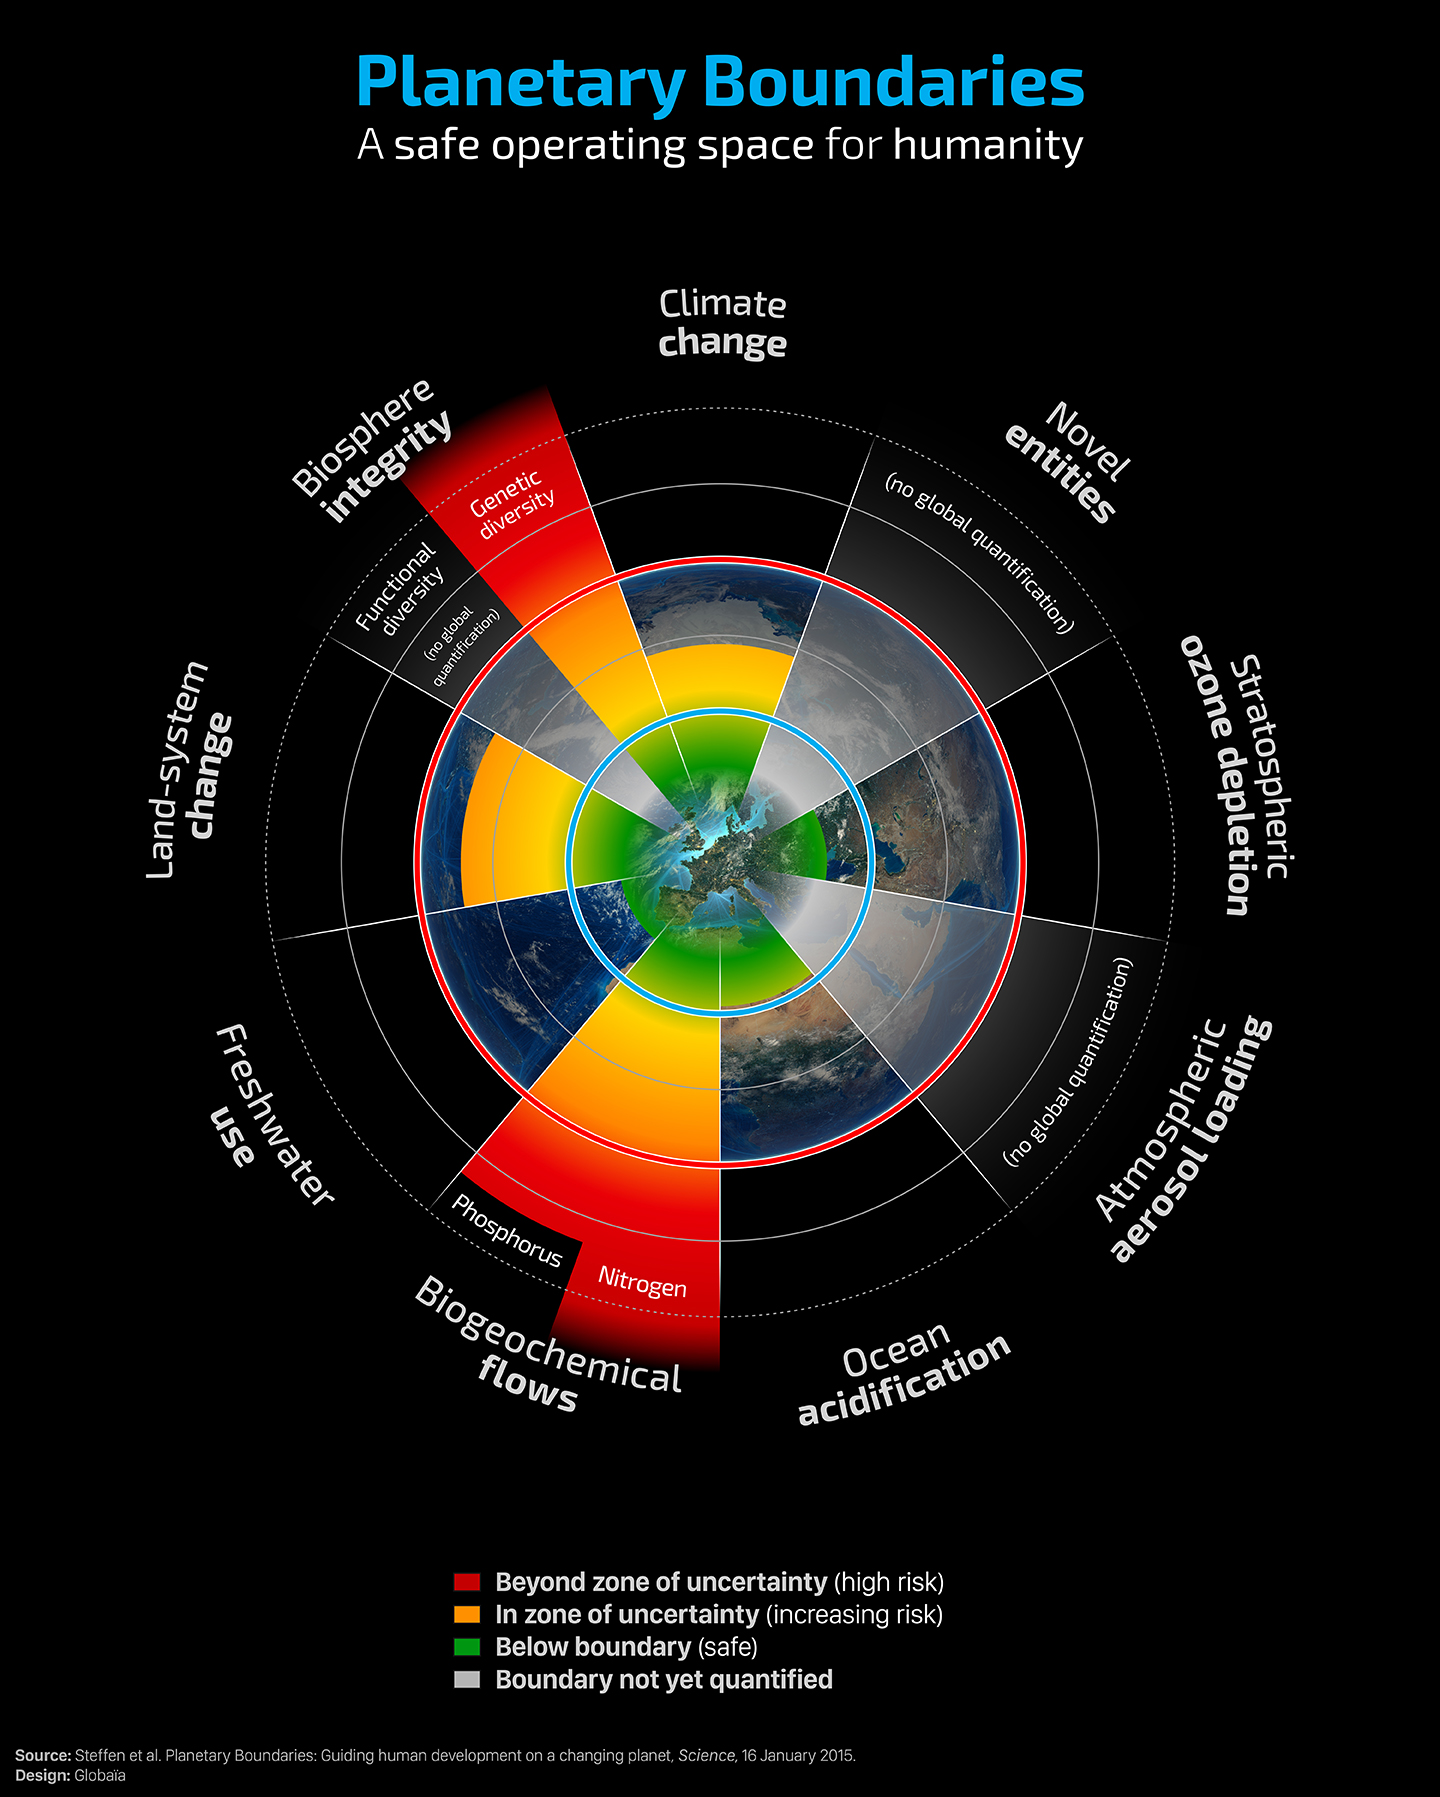 The nine planetary boundaries represent a framework of ideal conditions for humanity. Illustration: Globaïa.